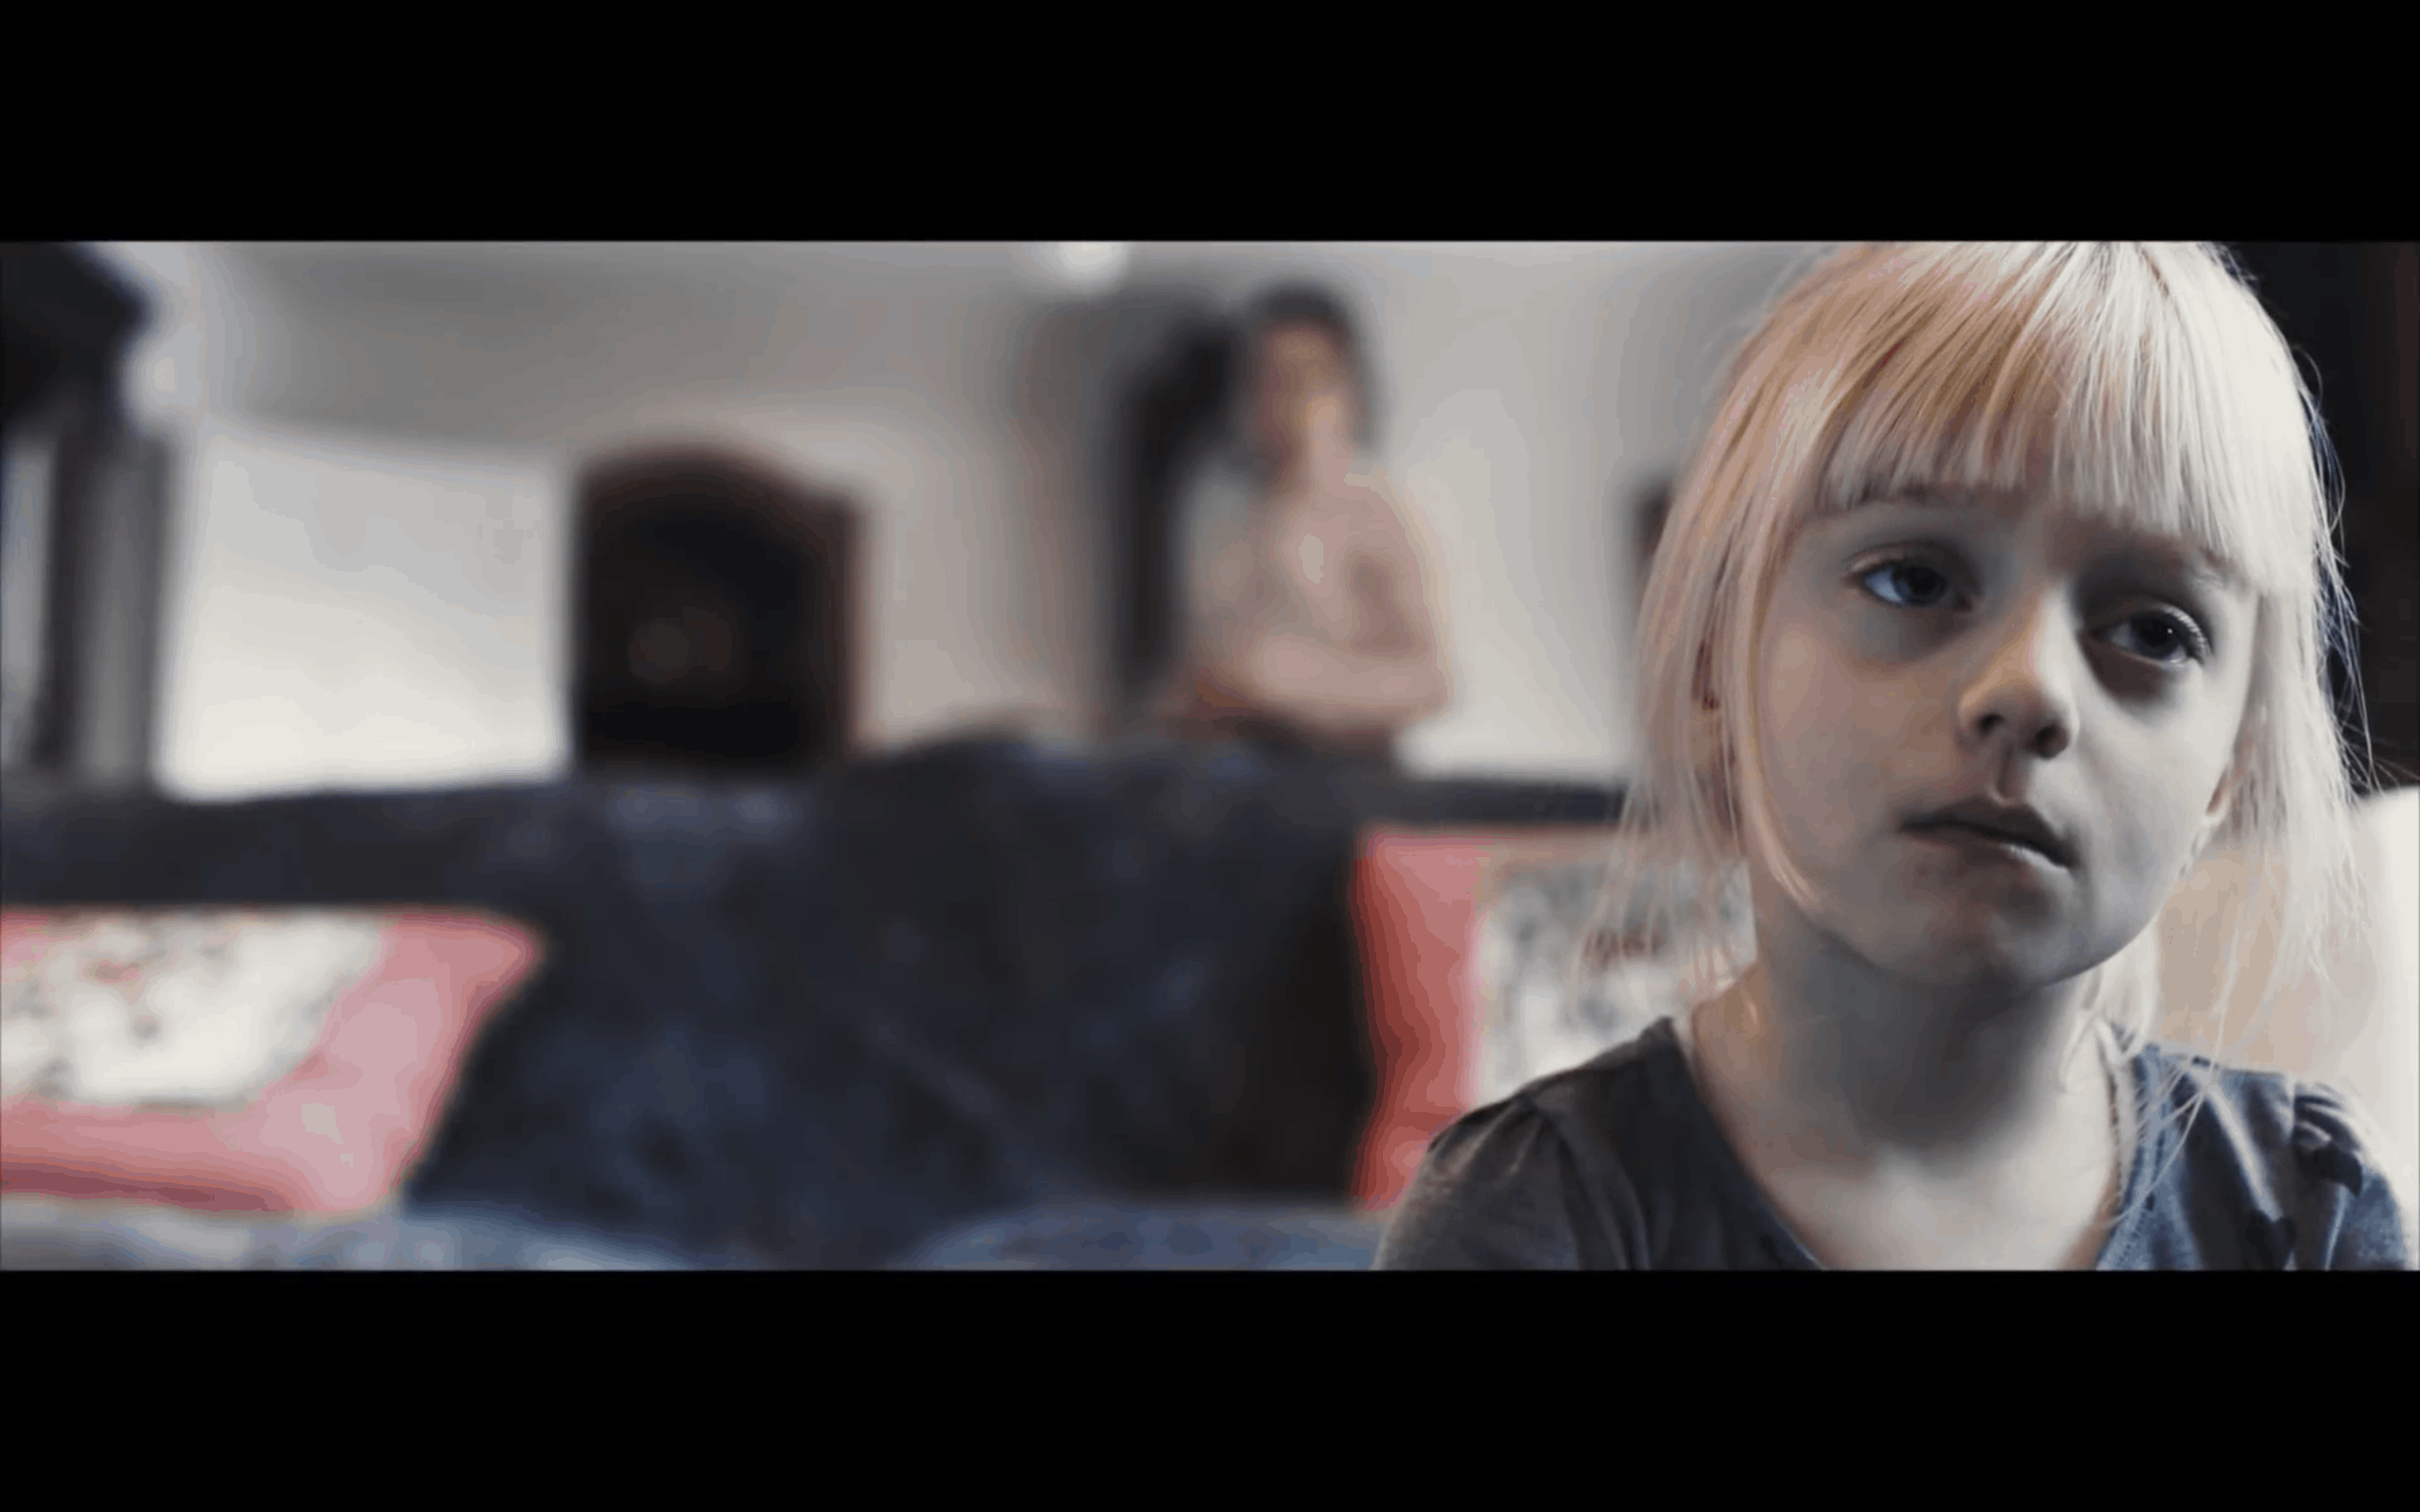 The Silent child - Maisie Sly